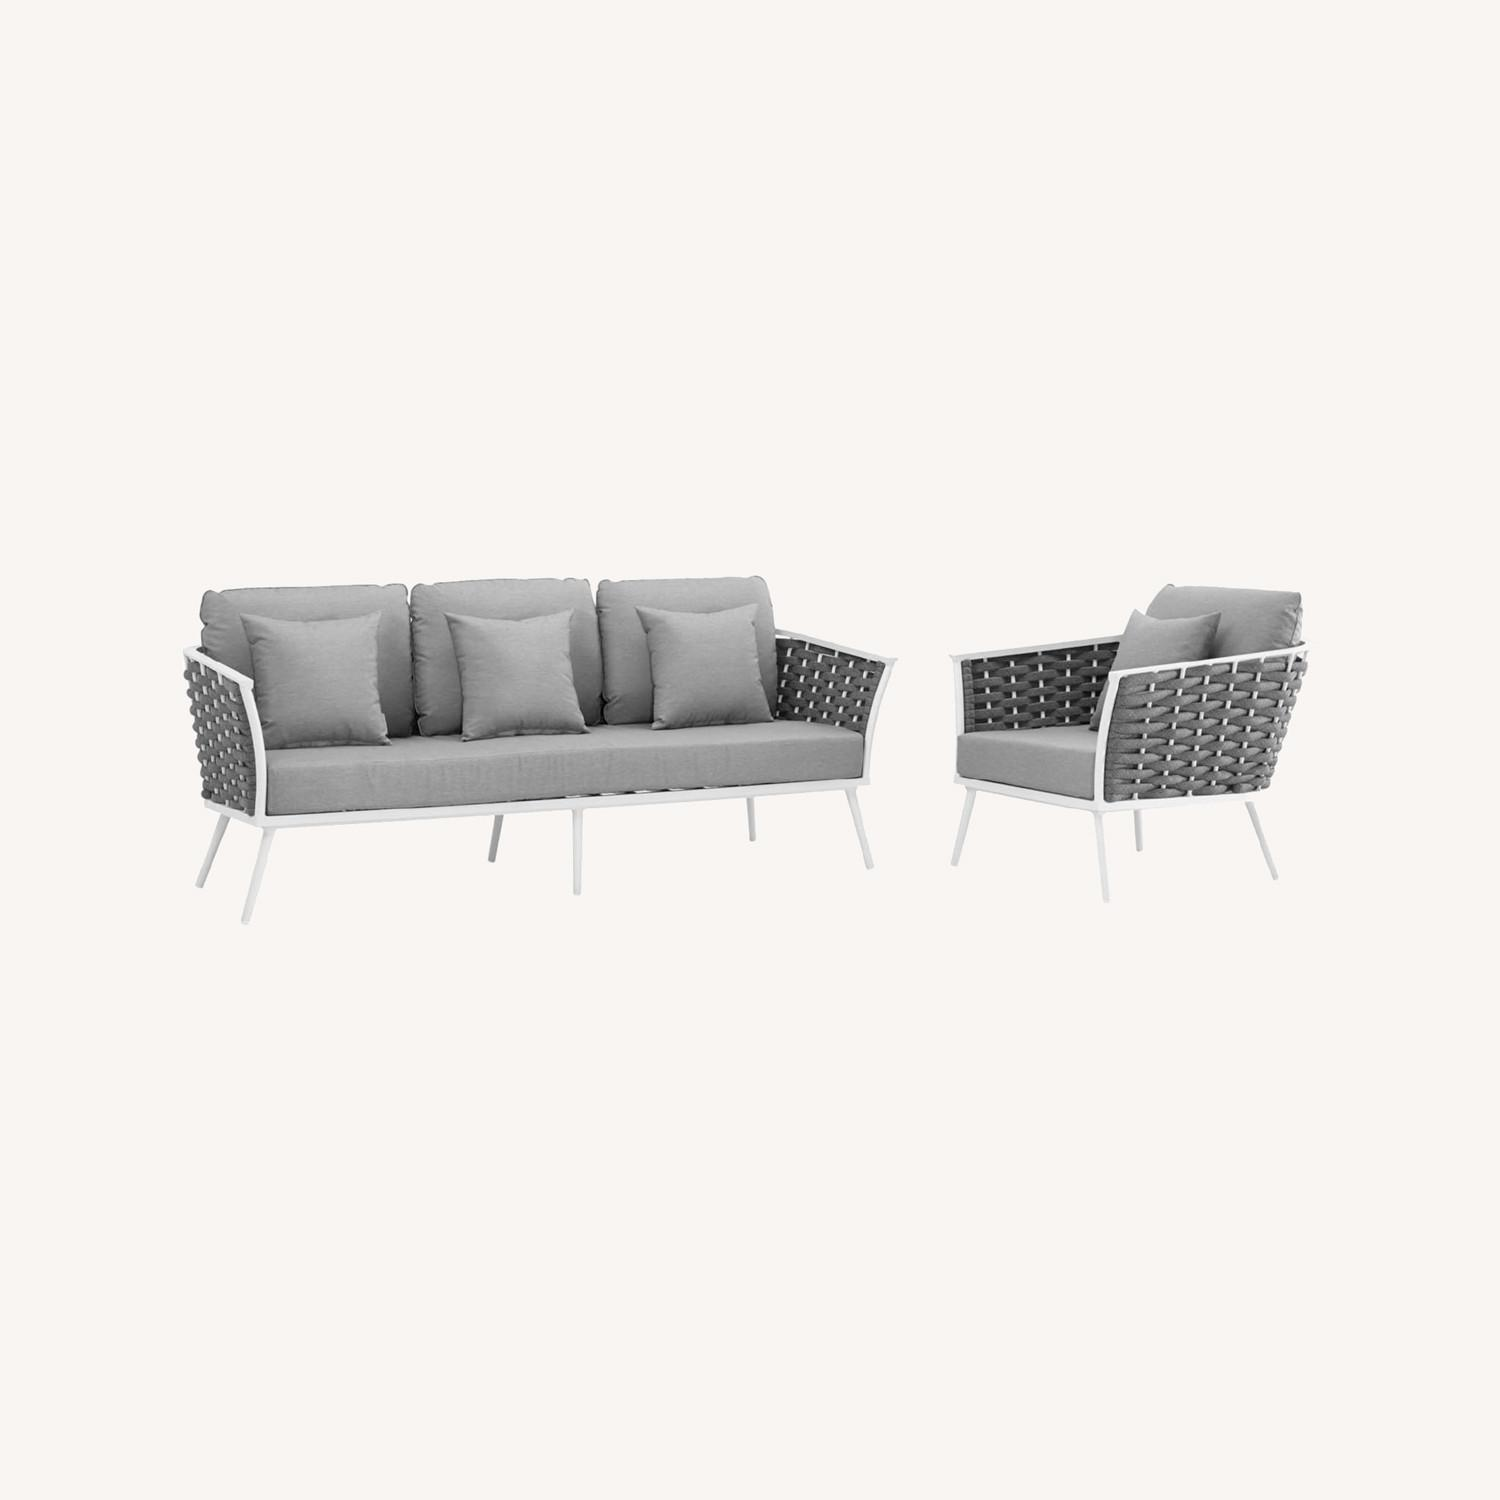 2-Piece Outdoor Sectional In Gray Foam Padding - image-8